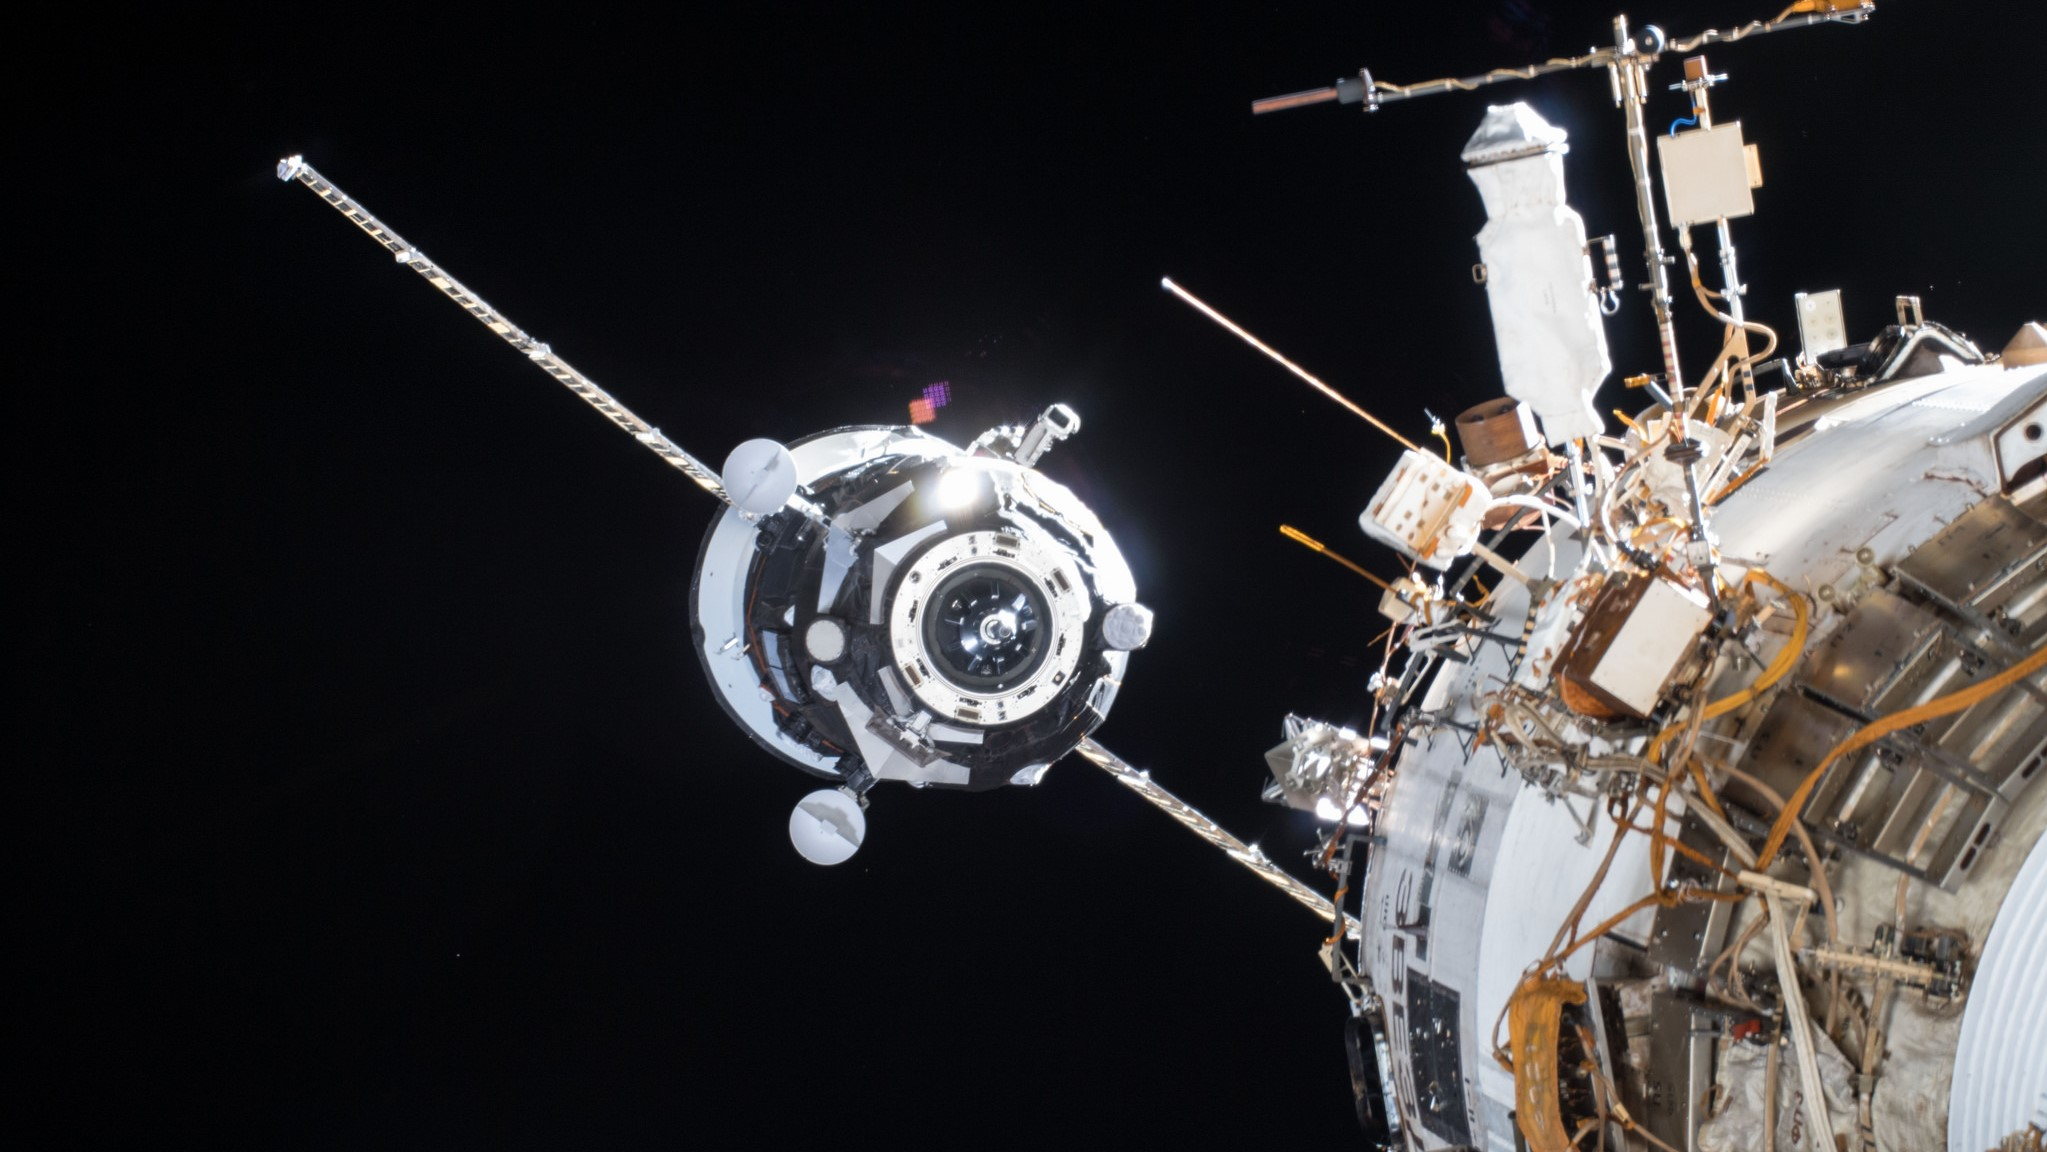 Progress MS-08 arrives at the International Space Station on Feb. 15, 2018, docking with the outpost's Zvezda service module. The spacecraft undocked Aug. 23, 2018. Credit: NASA